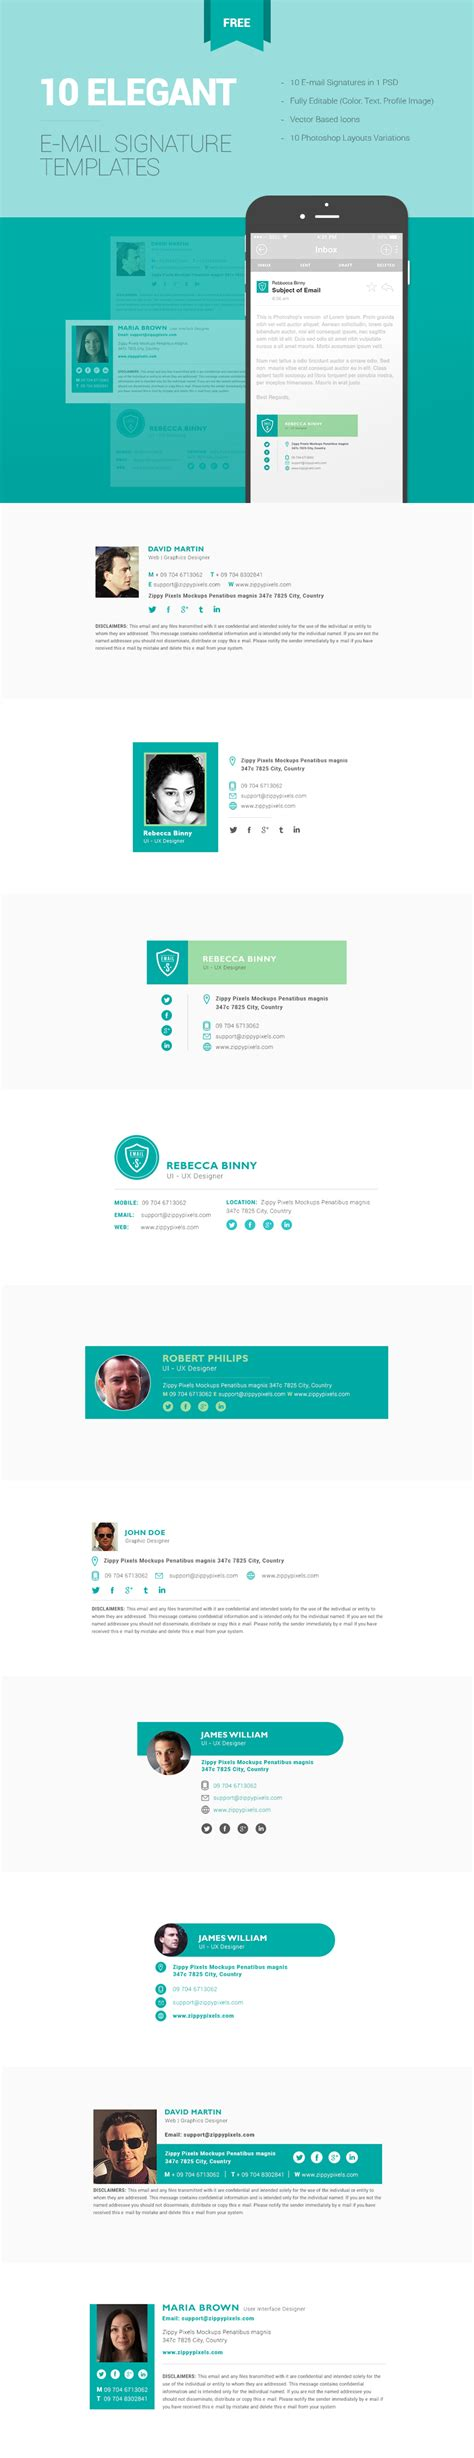 email template psd free 10 free email signature templates in one psd zippypixels